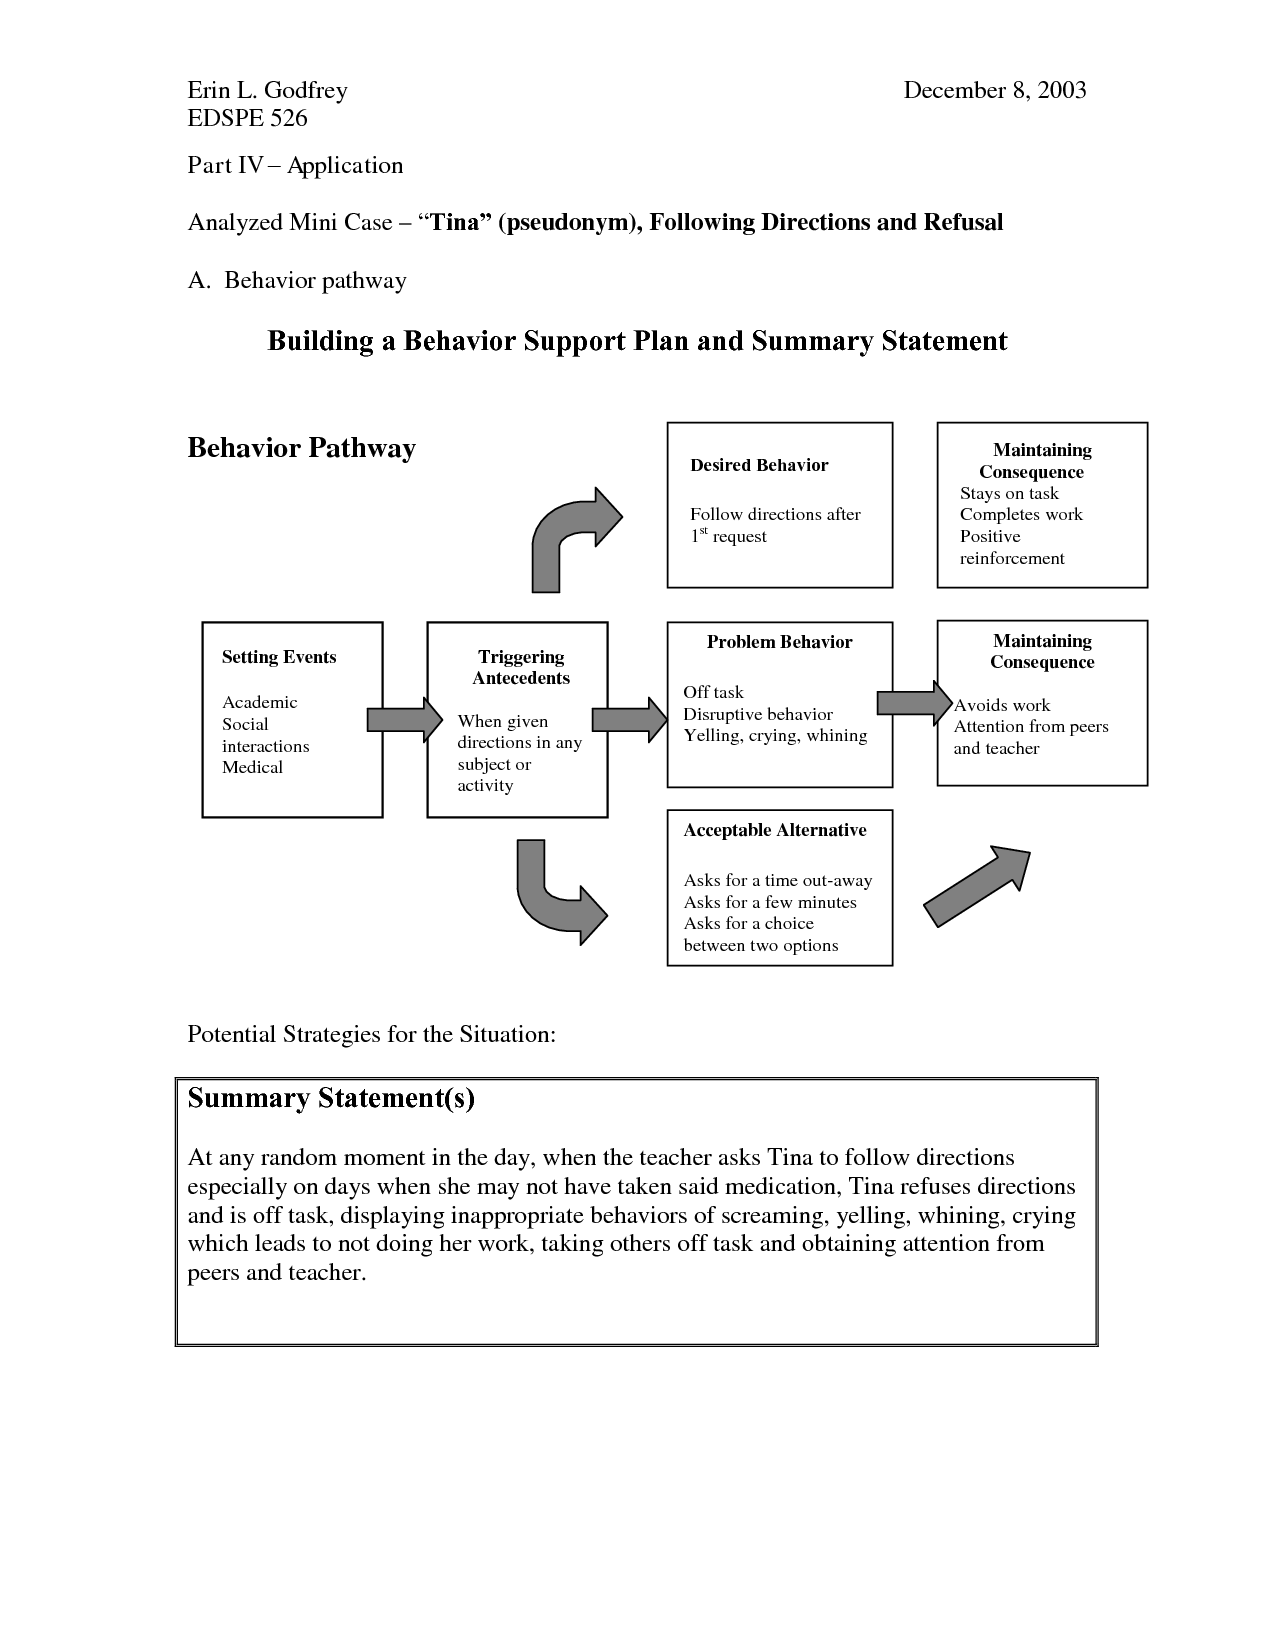 How Does Classroom Design And Organization Support Learning And Positive Behavior ~ Positive behavior support plan document sample